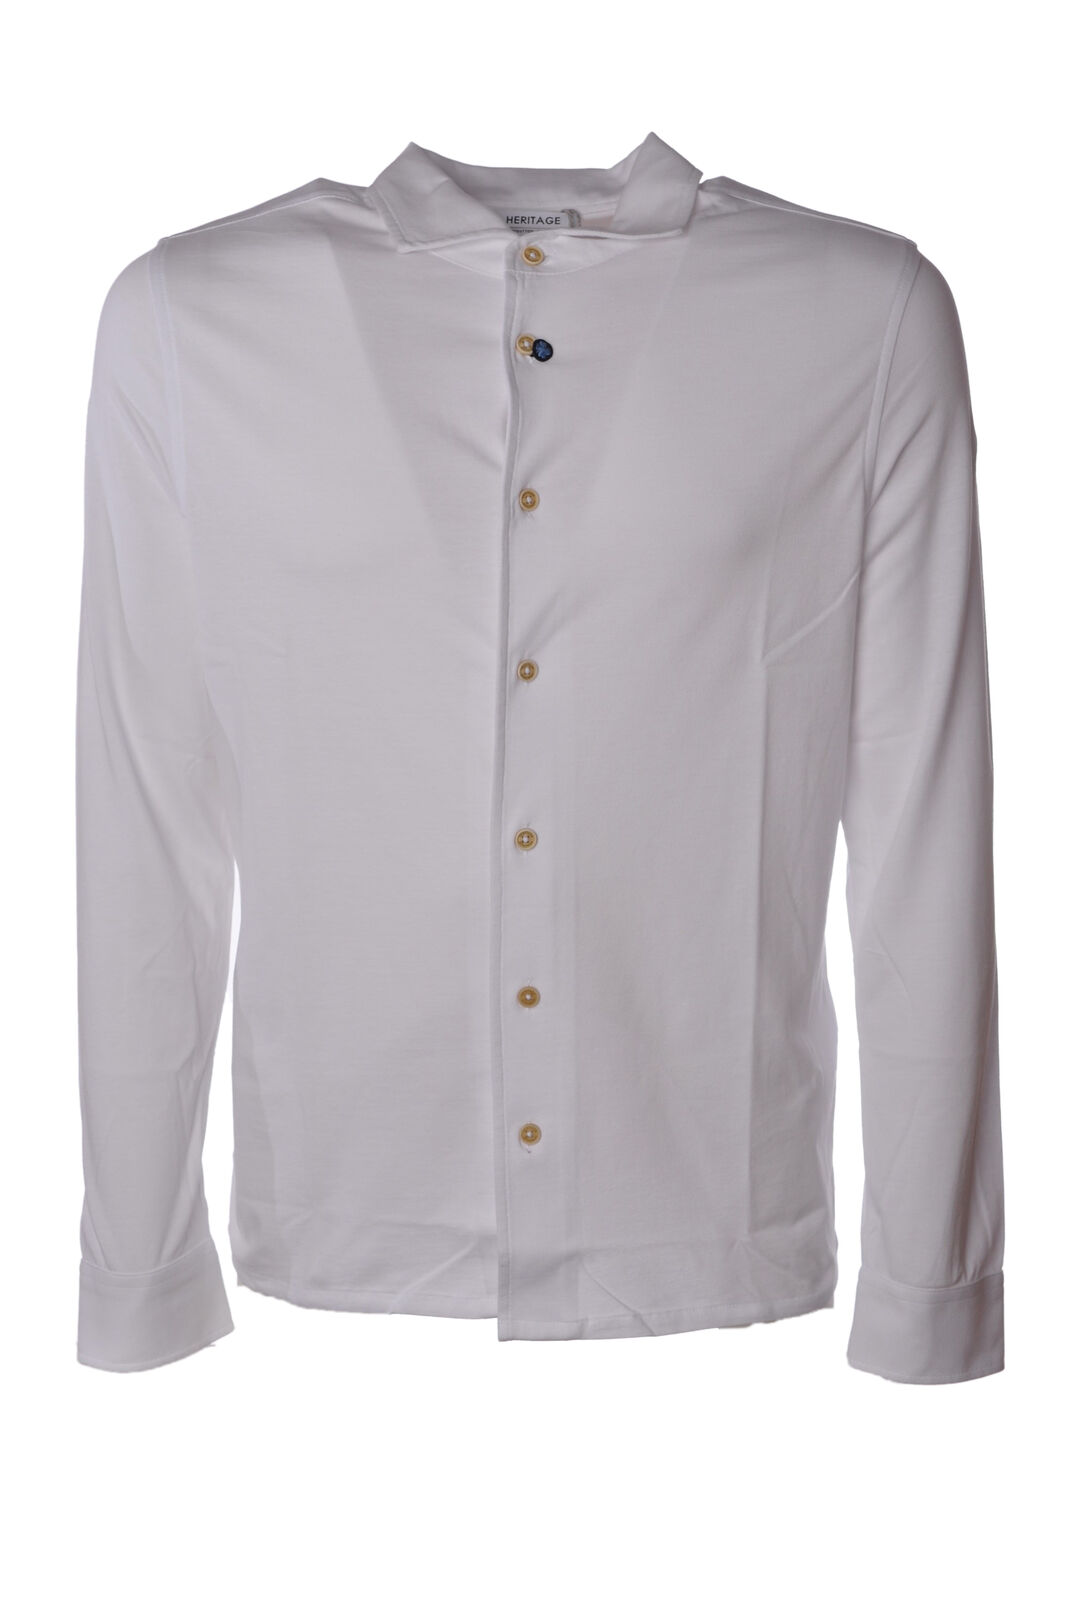 Heritage  -  Polo - Male - White - 3502422A181617